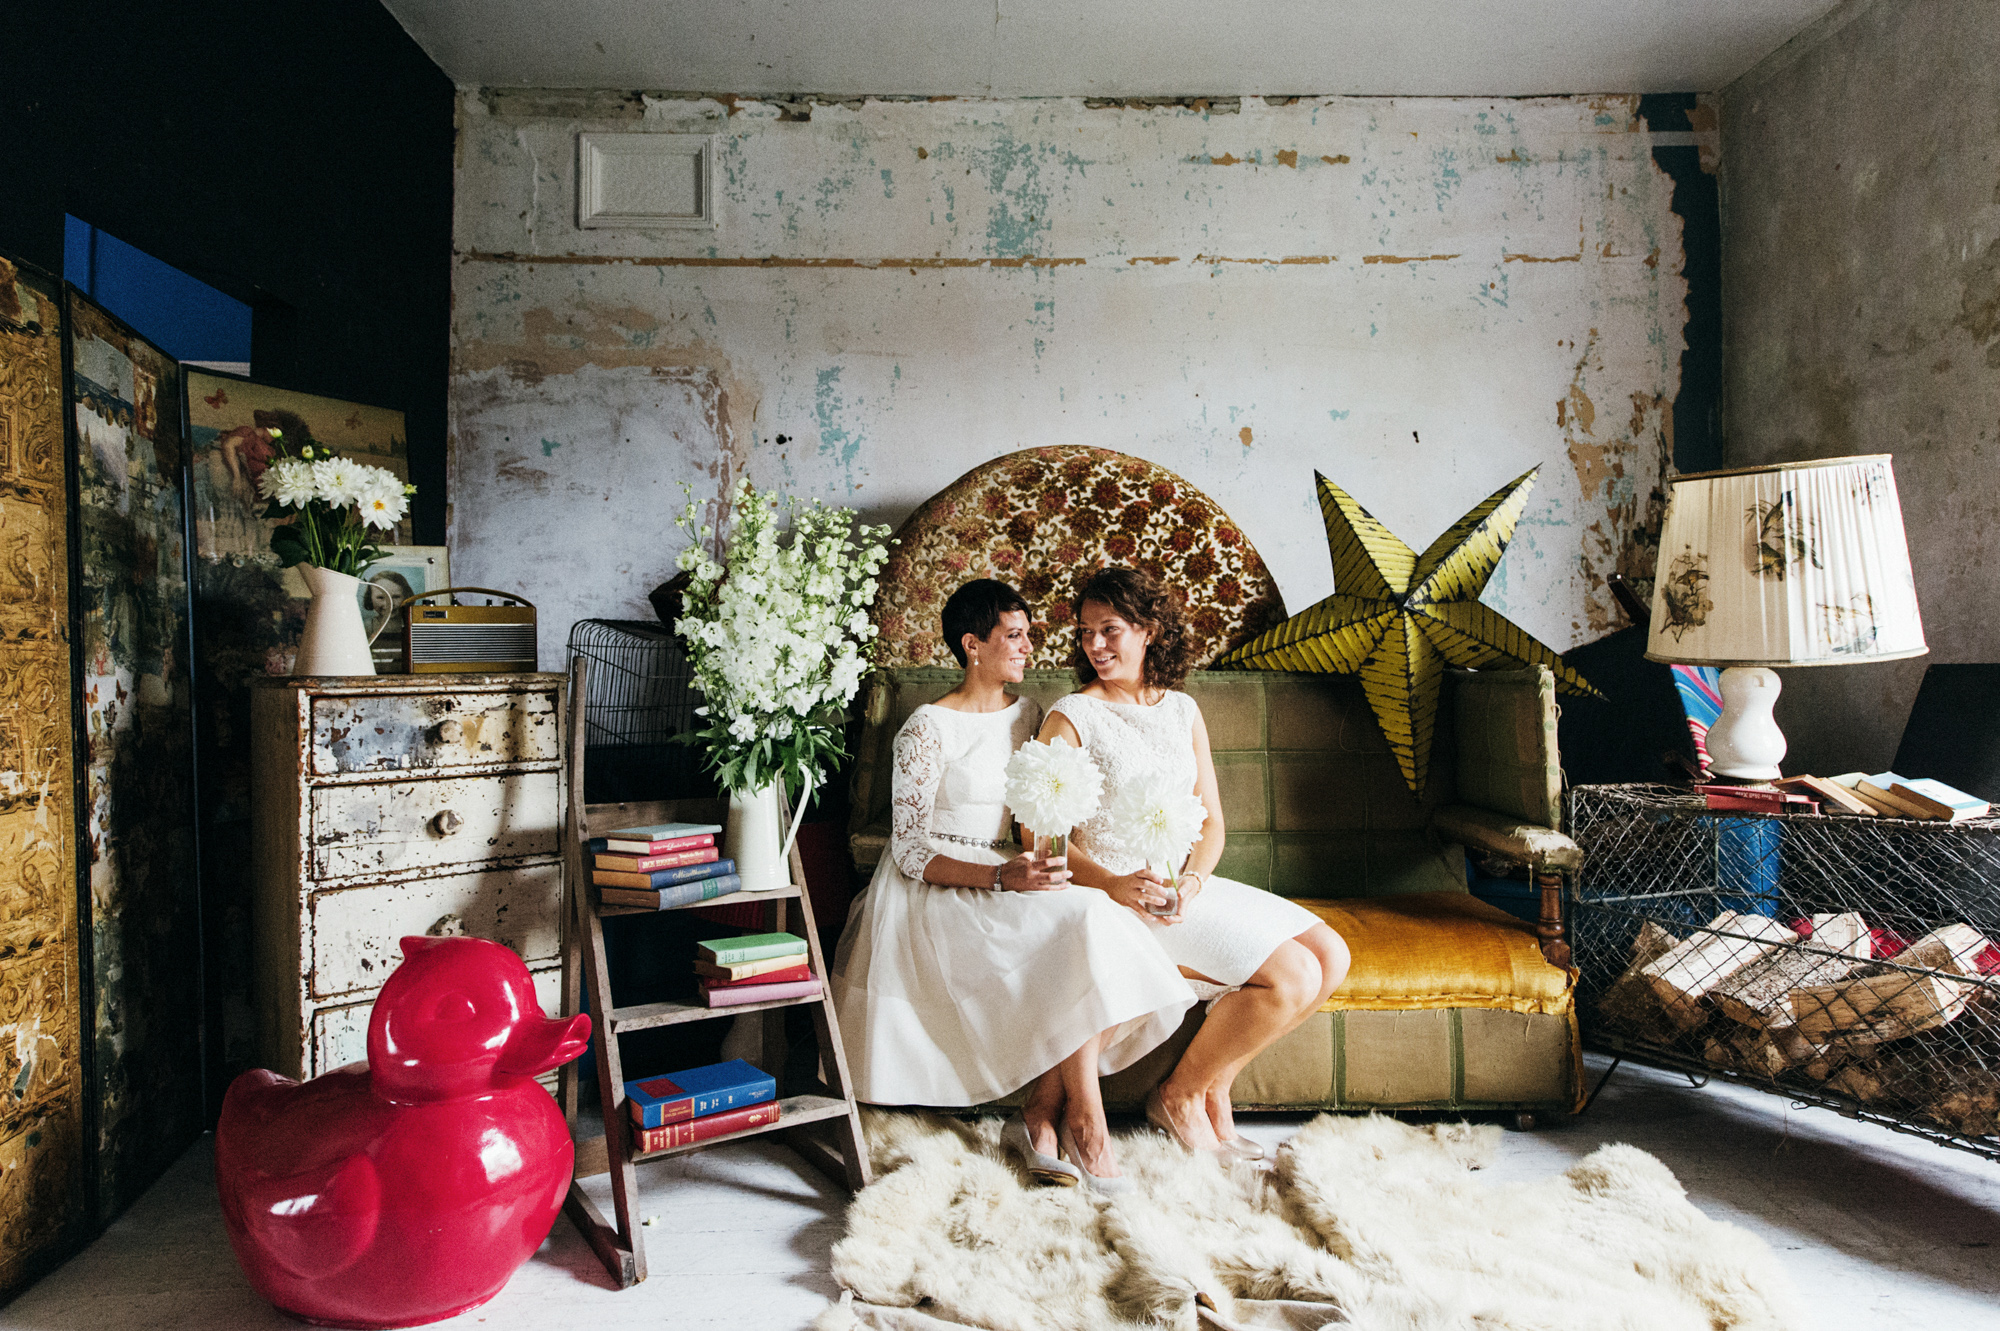 Brides in short dresses sitting on vintage furniture - gay wedding The Roost Dalston wedding - quirky London wedding photographer © Babb Photo